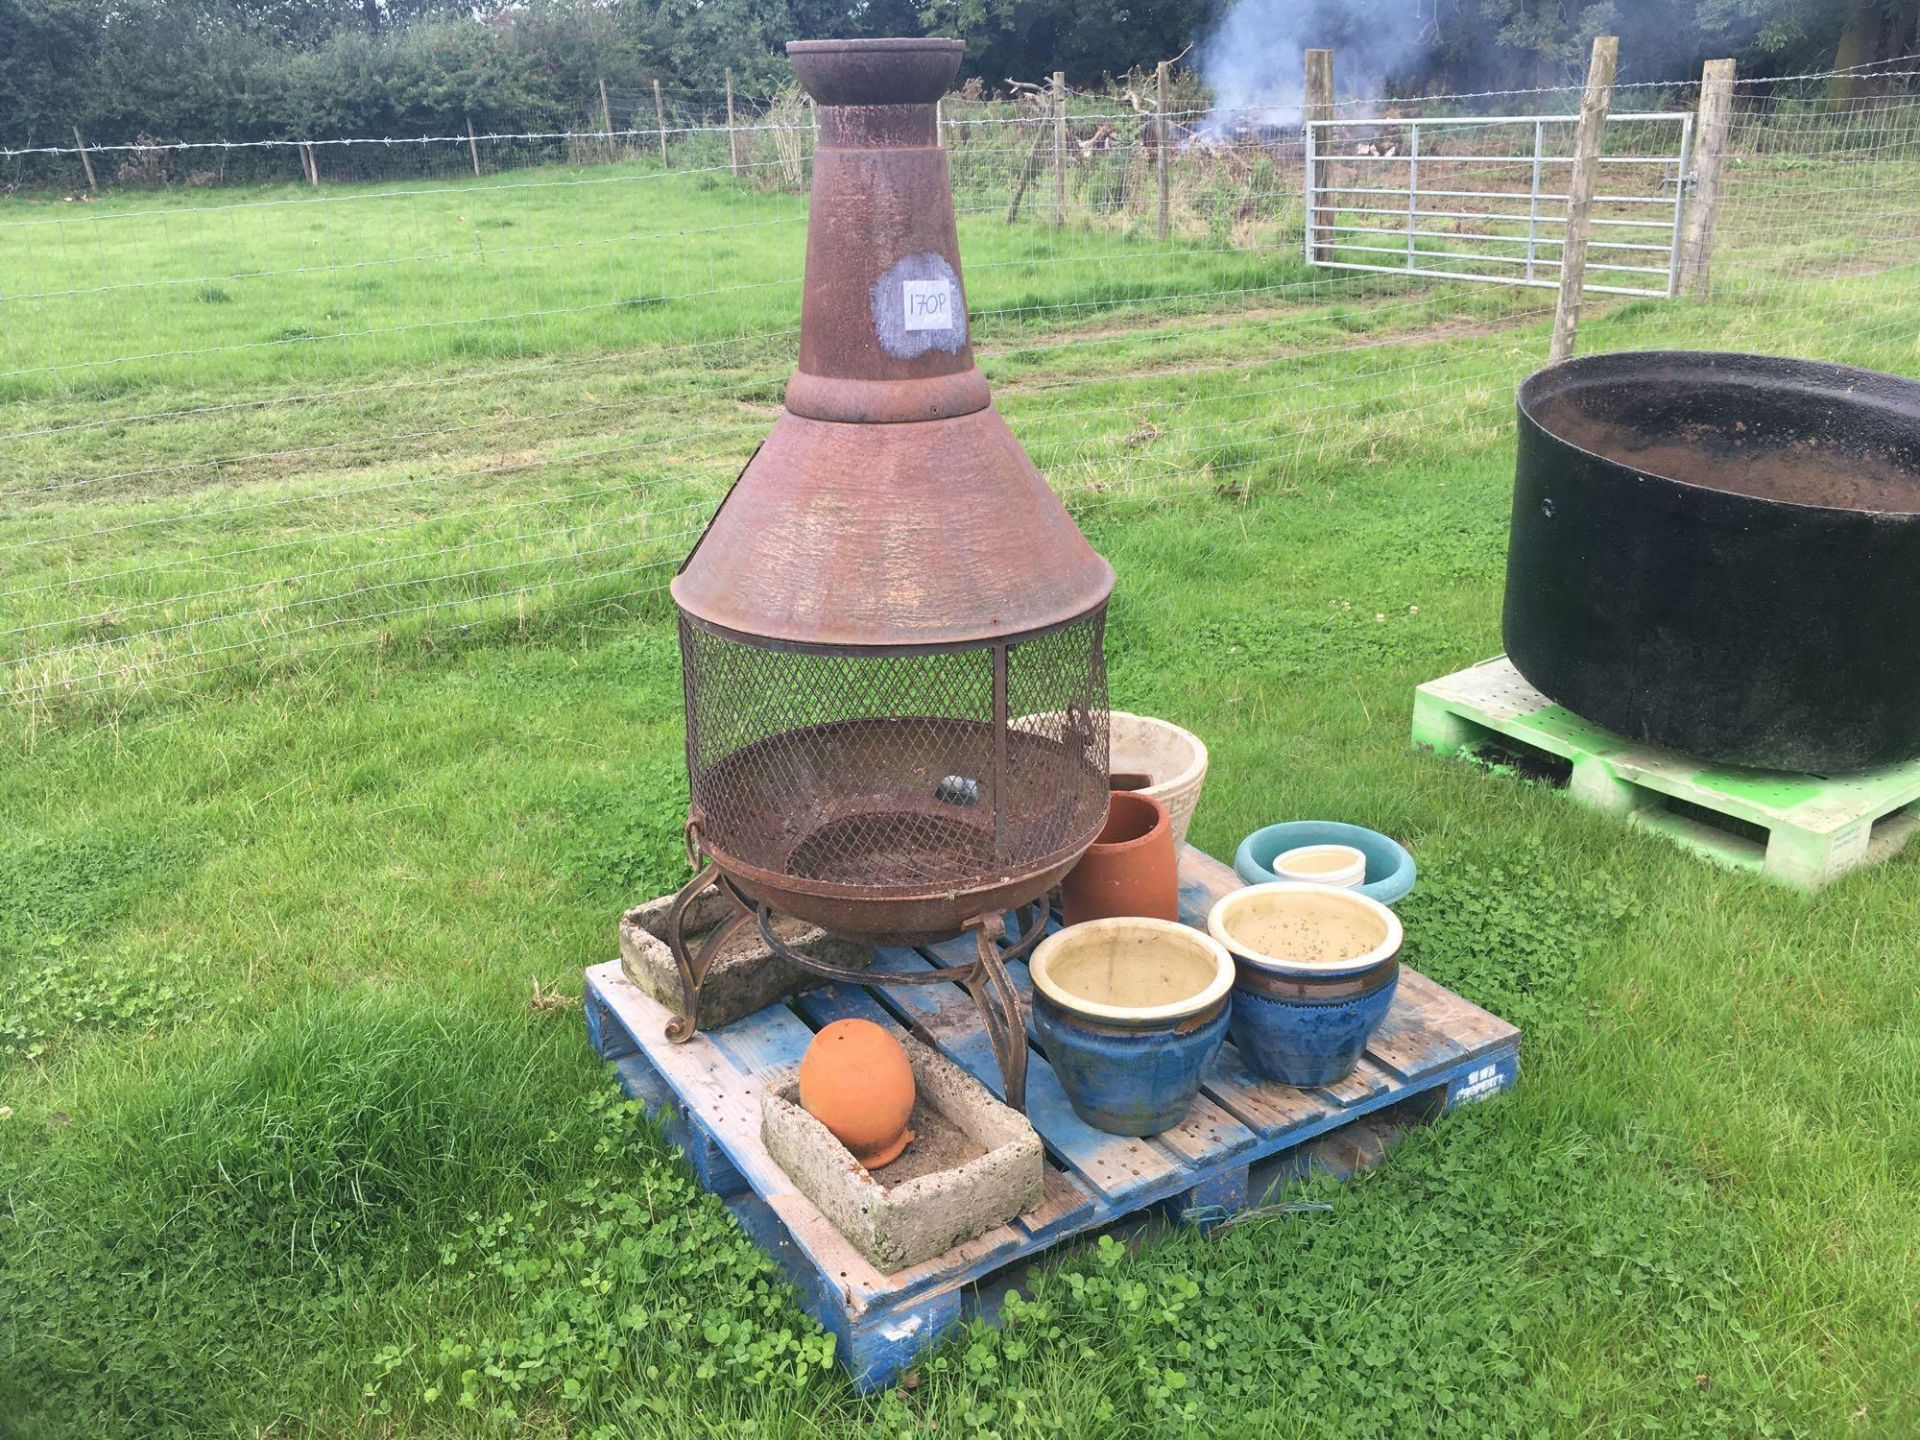 Lot 170p - Chiminea with garden pots